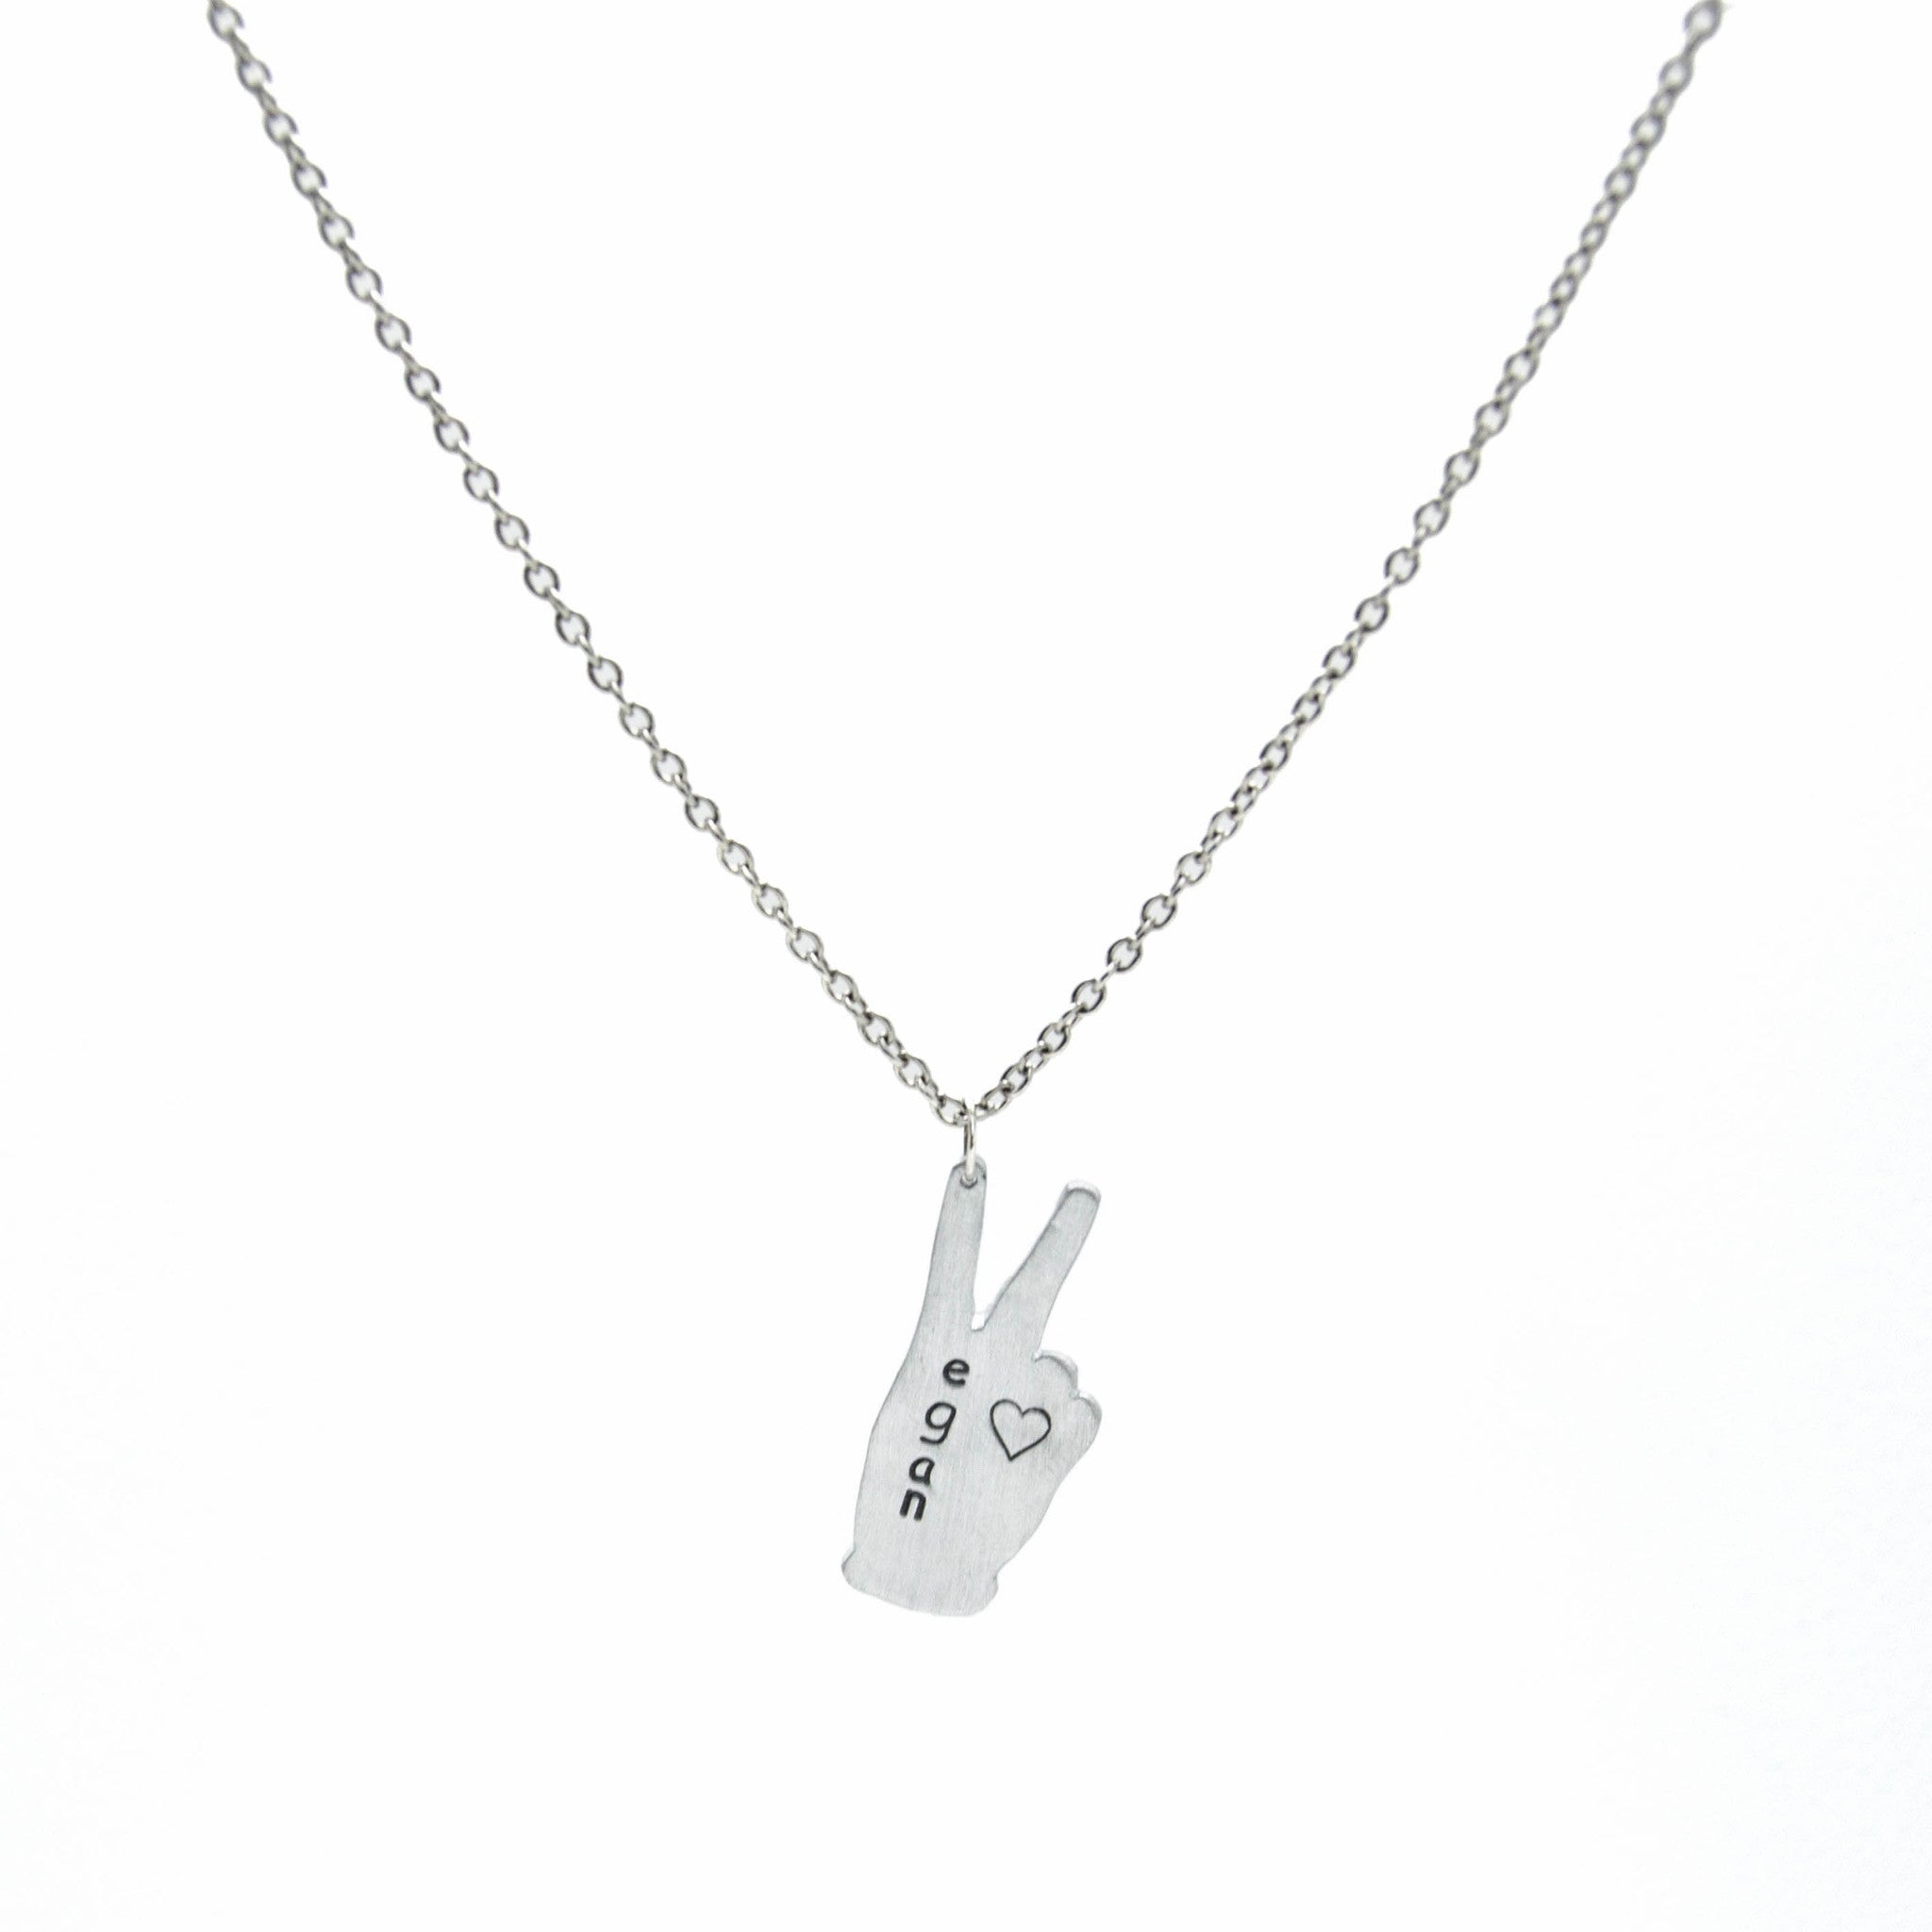 peace gallery silver lyst jewelry in paperclip chain moschino pendant metallic necklace